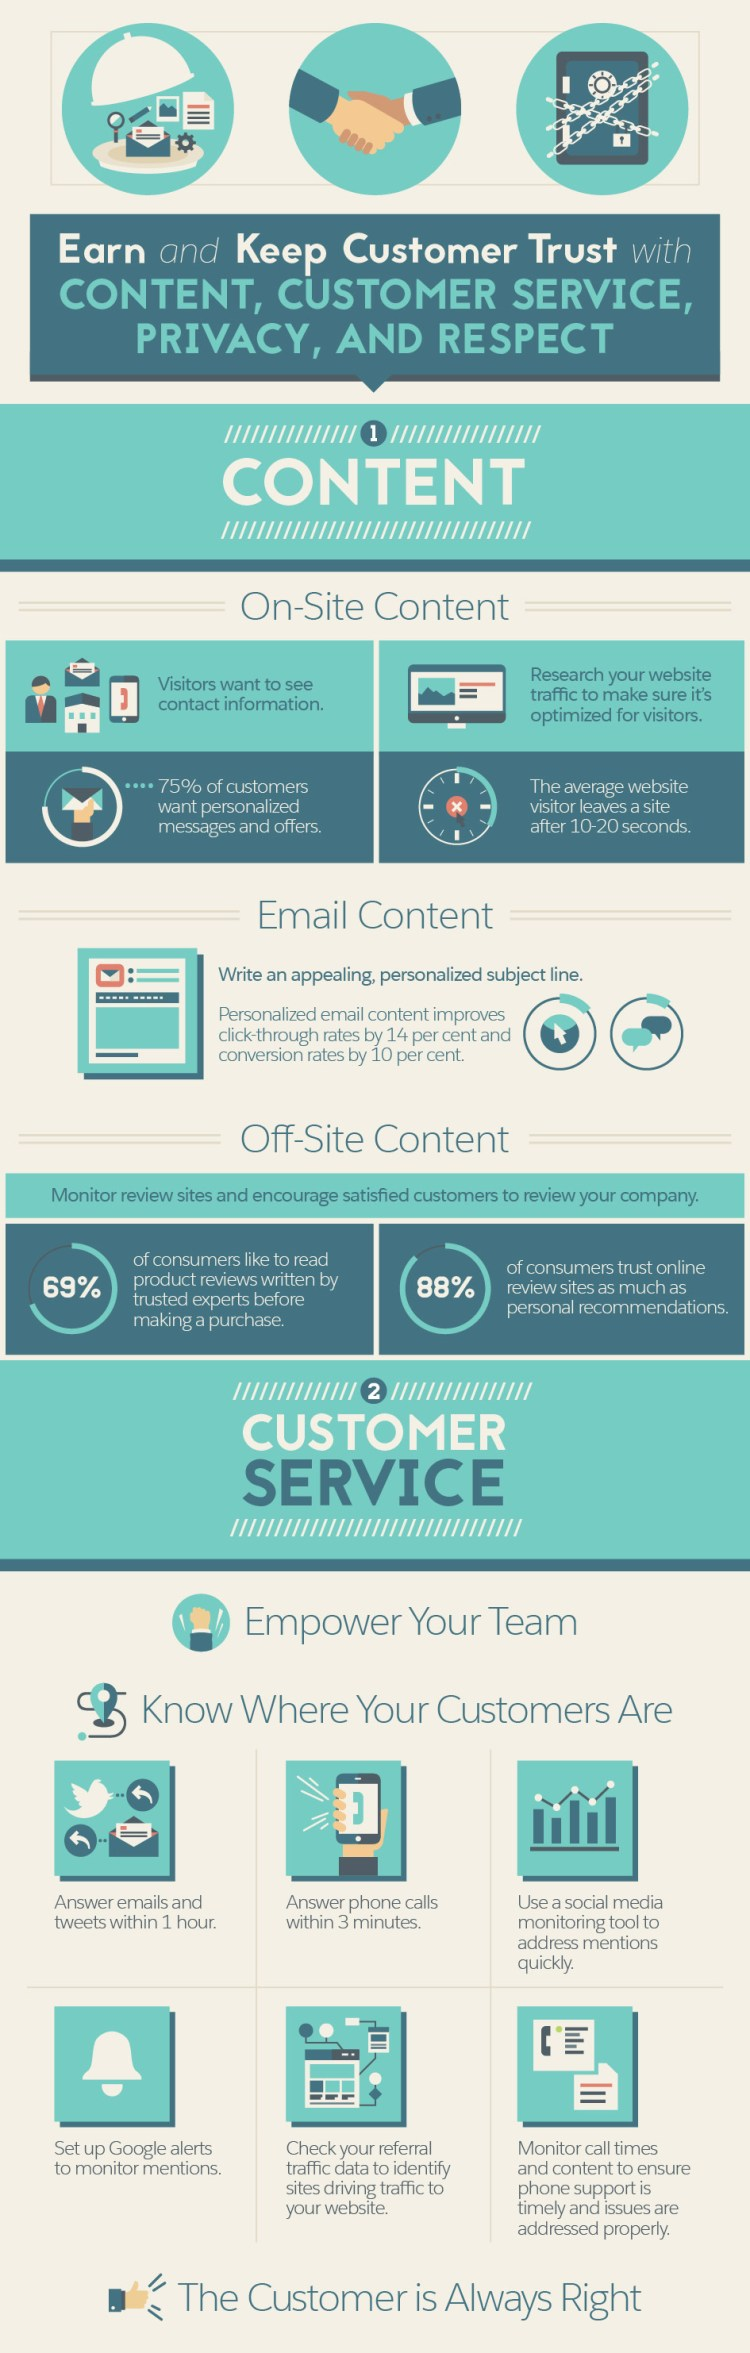 SalesForce infographic 2